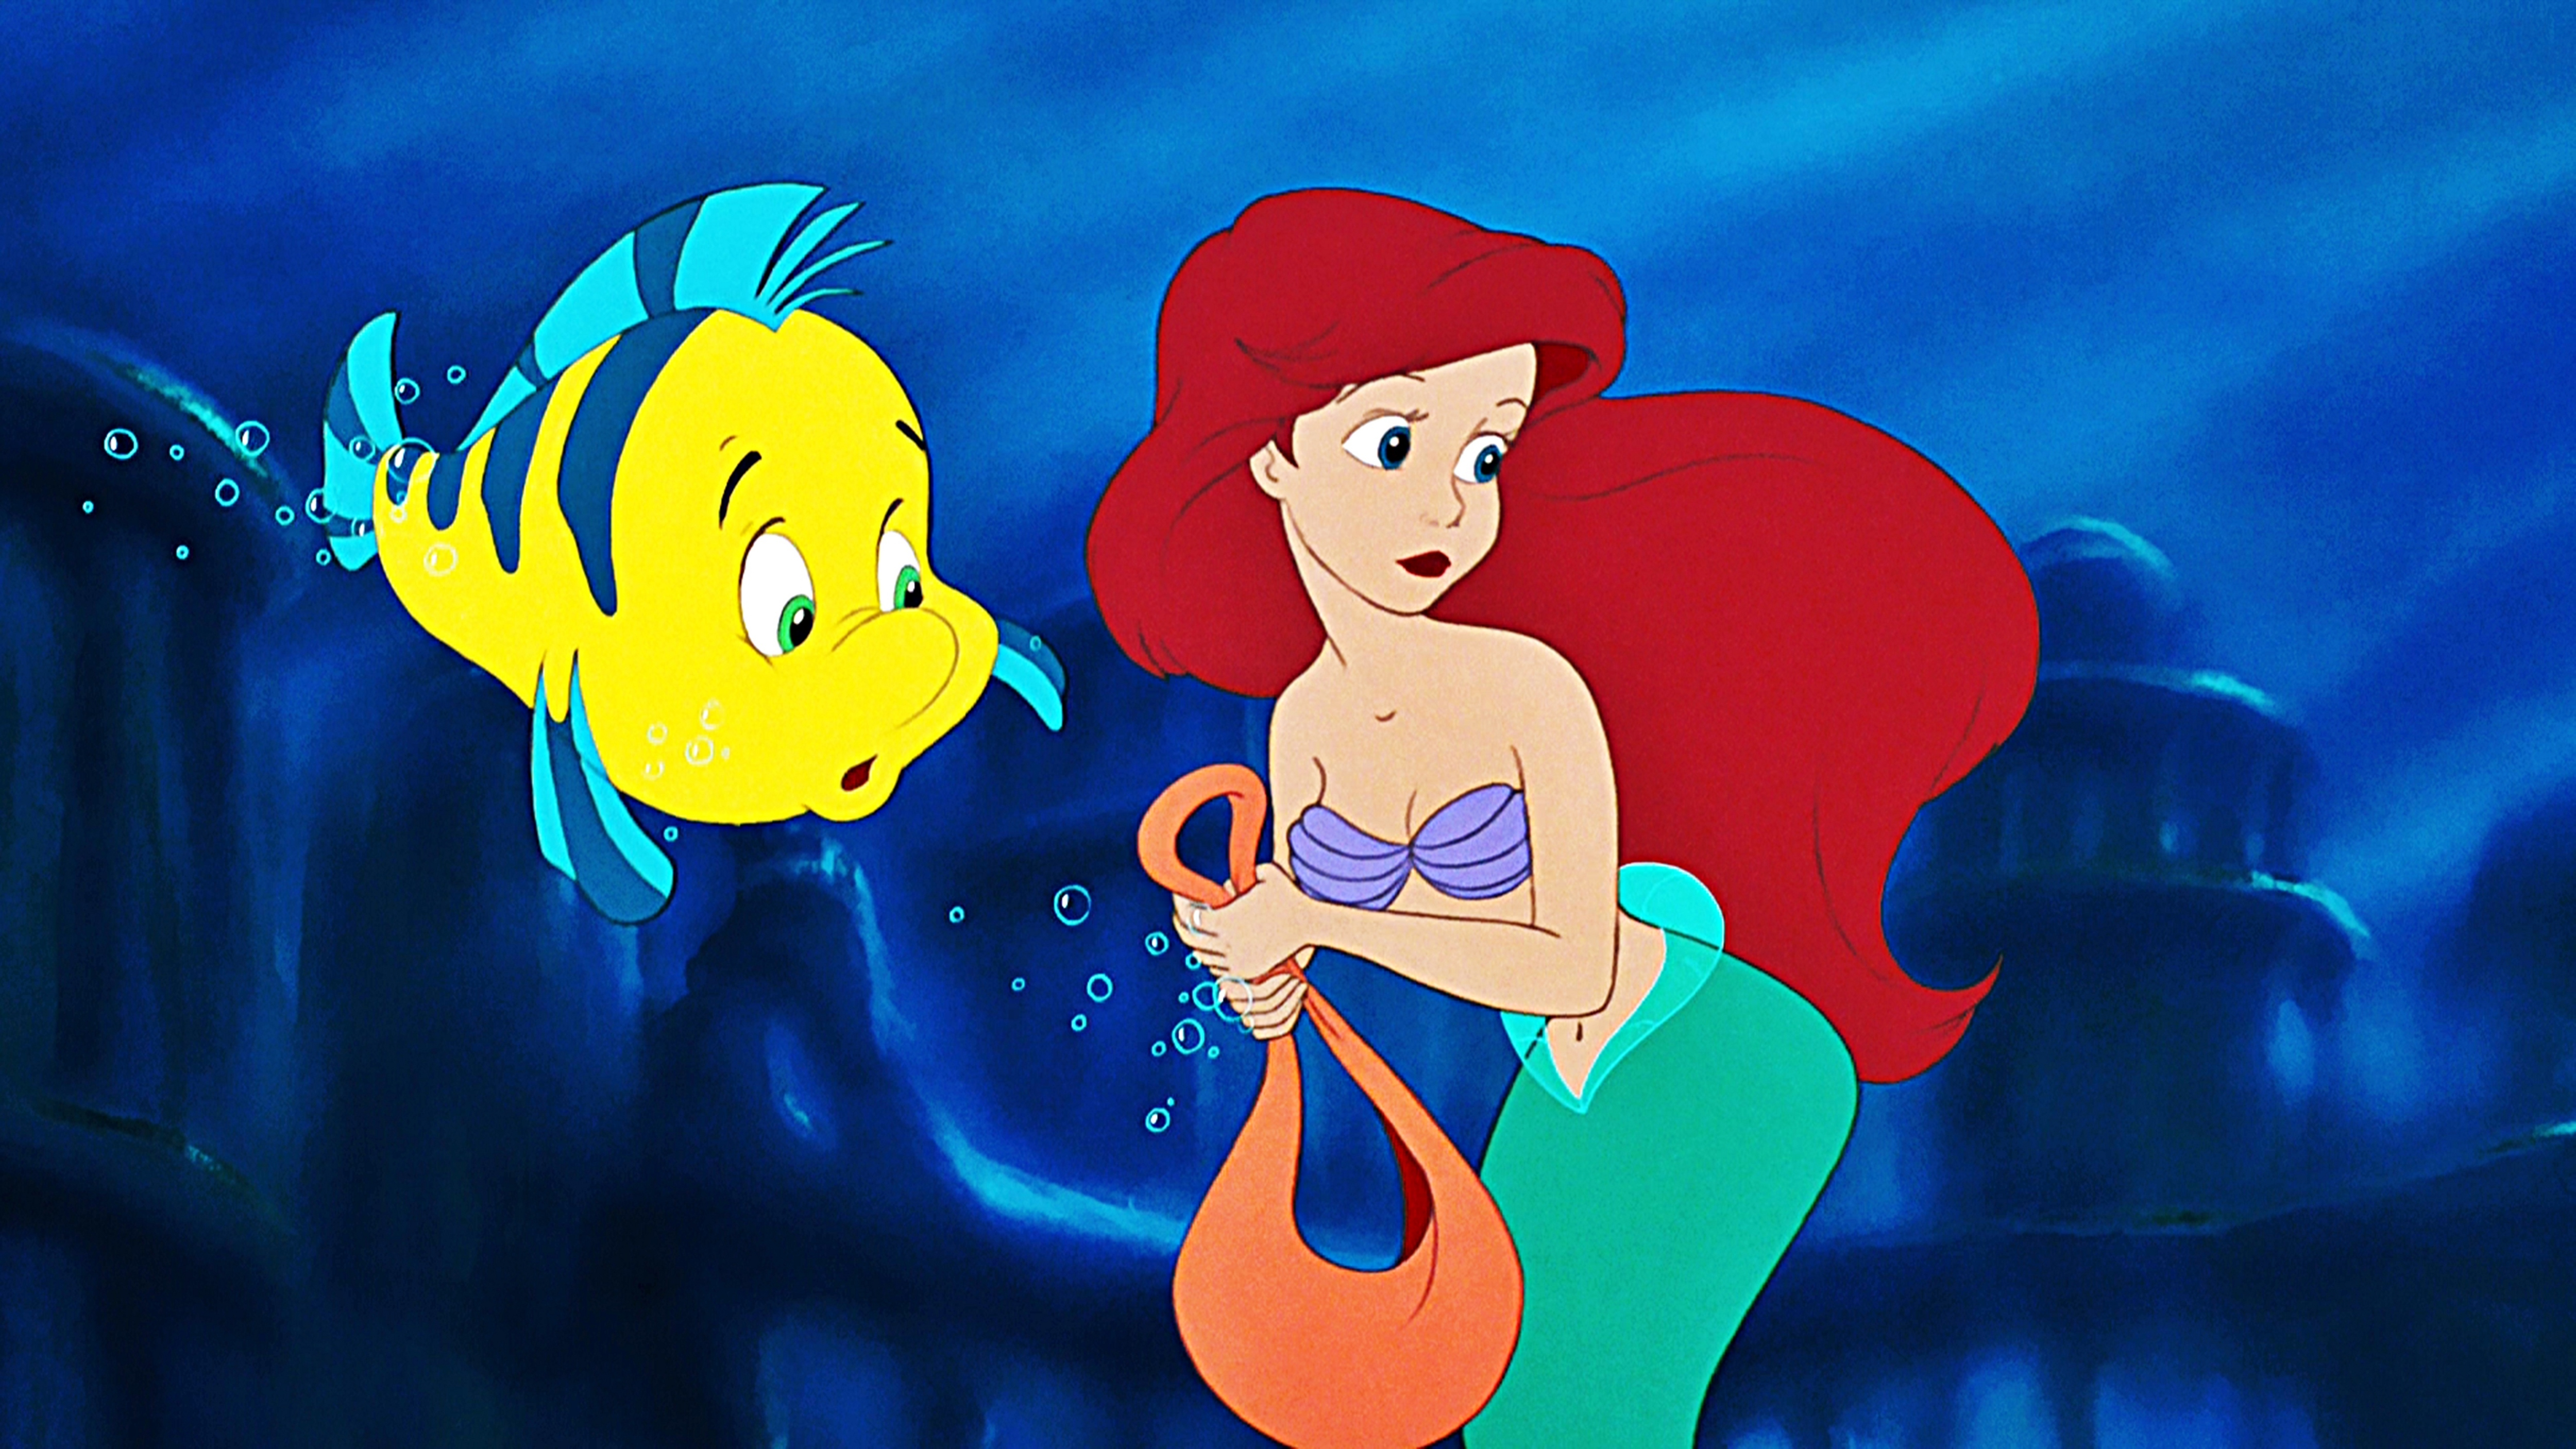 Hair color not hair style poll results disney princess fanpop - Disney Princess If You Had Rapunzel S 70 Foot Long Hair What Would You Do With It Not Including Hair Color